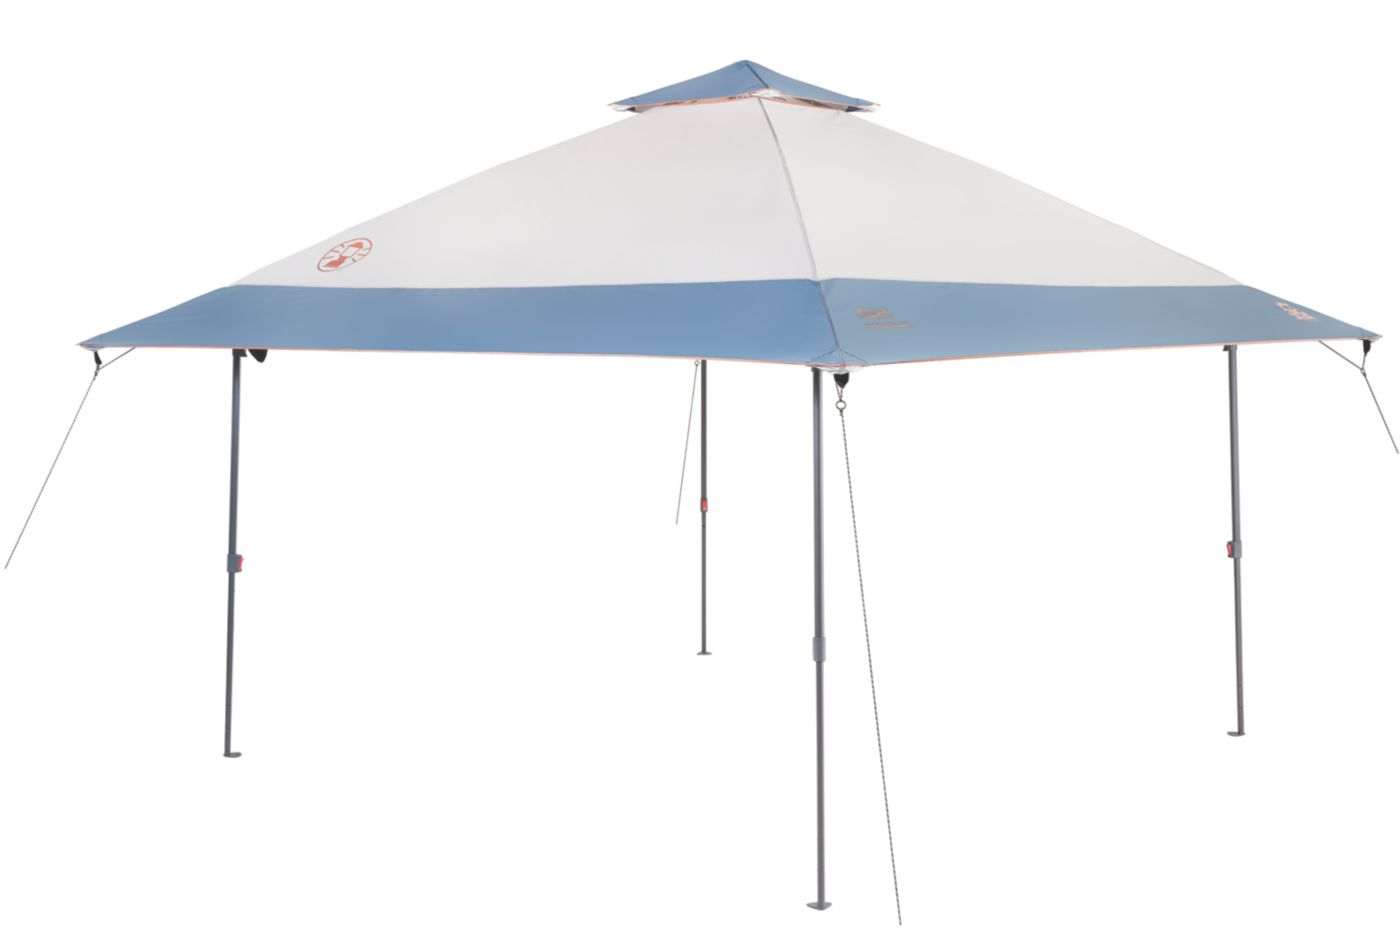 All Night™ 13 x 13 Instant Lighted Eaved Shelter  sc 1 st  Coleman : instant shelter canopy - memphite.com